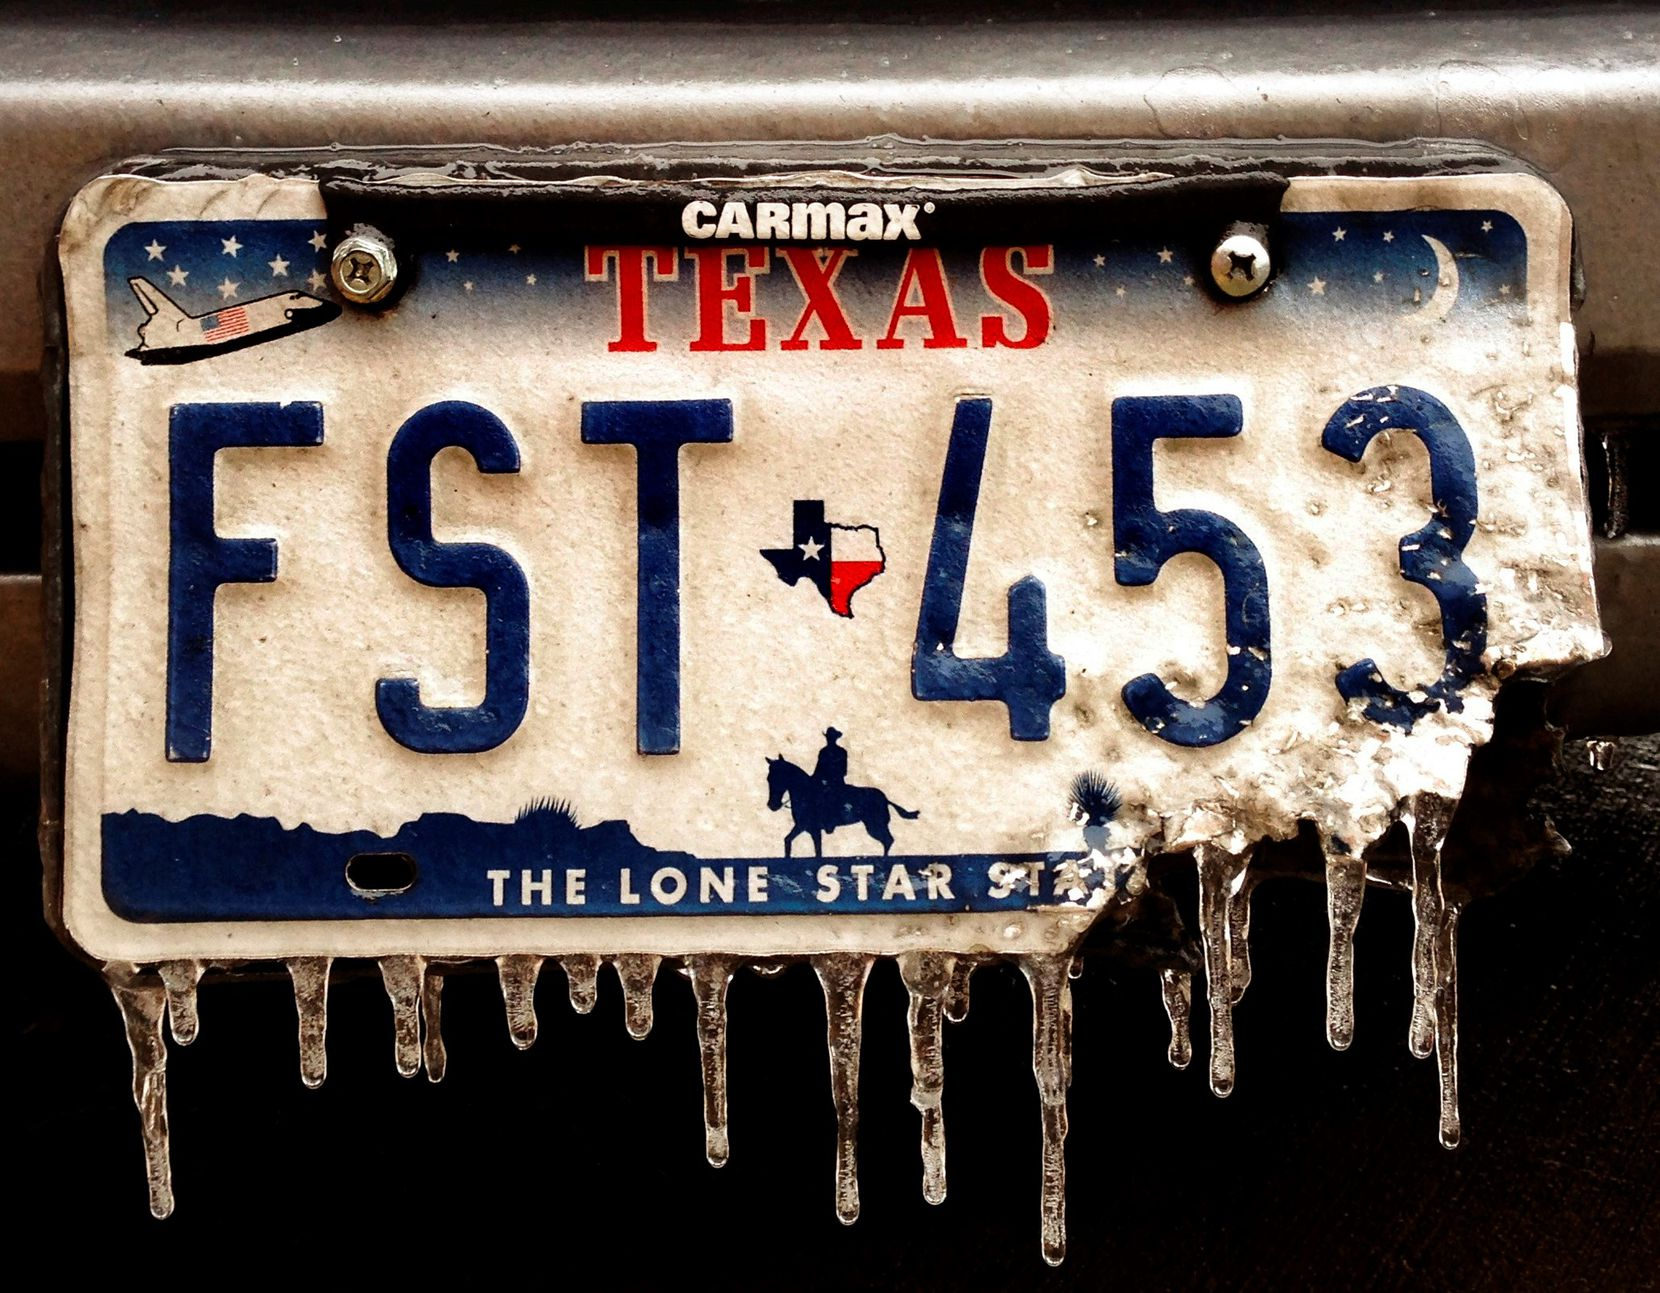 """With its red, white and blue color scheme, the """"Lone Star Classic"""" licence plate design — immediate predecessor to the current """"Texas Classic"""" plate — surely sent chills of patriotism up the spine of many a motorist."""